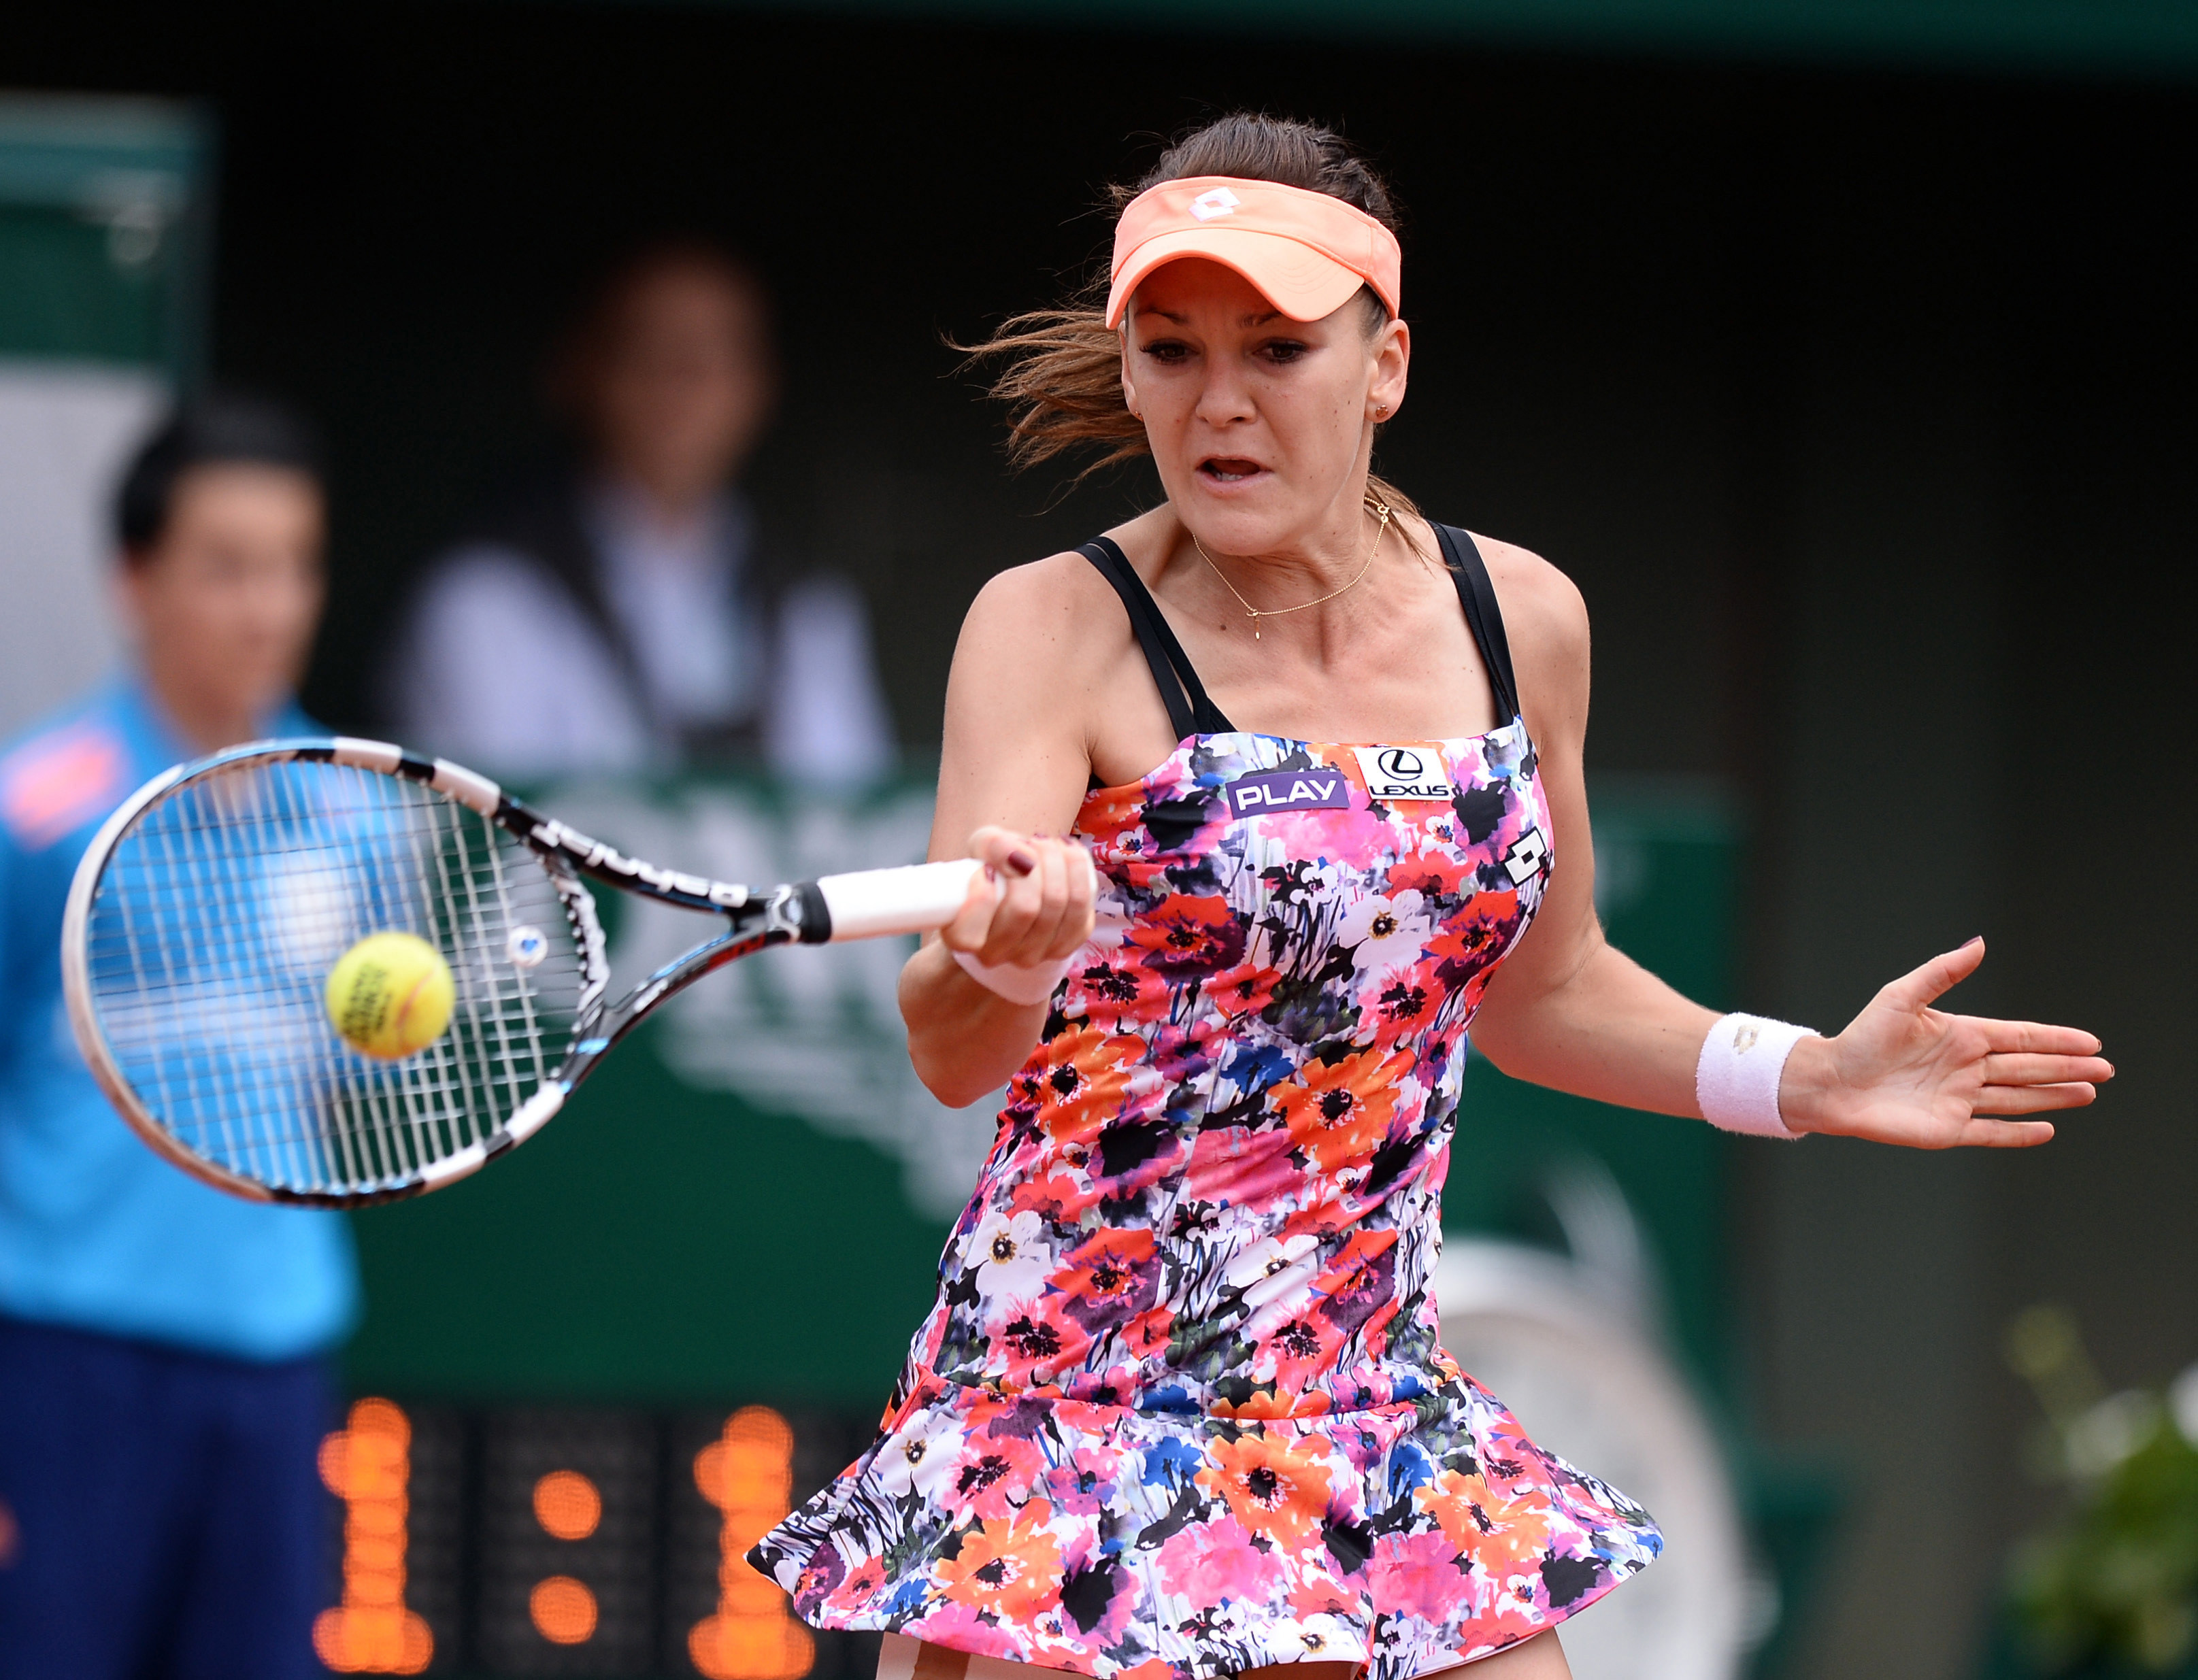 Radwanska's flower power kit from Lotto was less than flattering at the French Open.